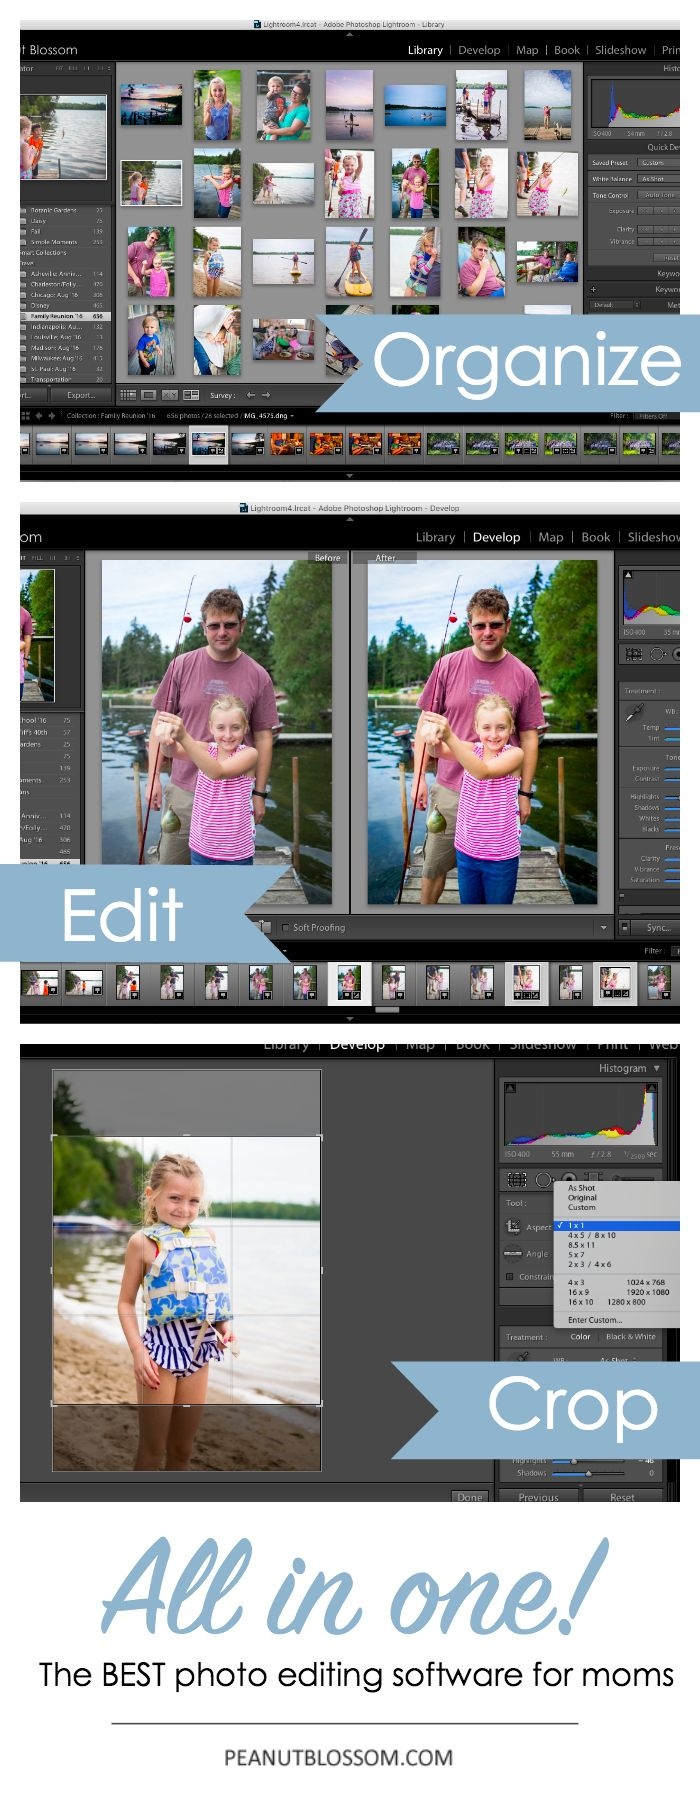 The best photo editing software for moms! You can organize your entire photo library, never lose a photo again! Fantastic photo editing features that are simple to learn and easy to use. Crop your images for printing or sharing with friends on social media. All of these features in one great program. This is a must have for all mom photographers and bloggers.